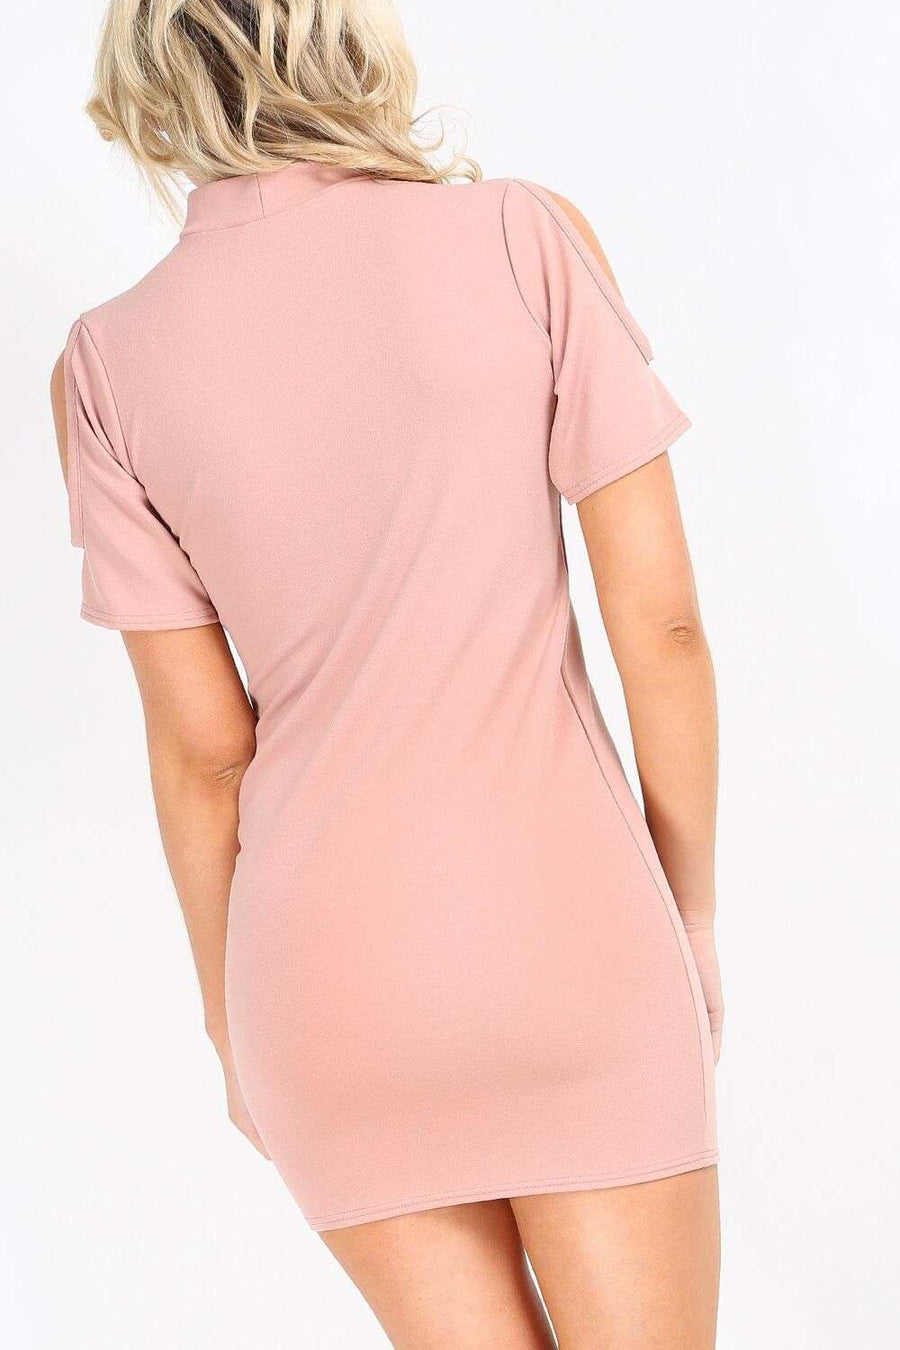 Lassi Lace Up Dress - bejealous-com